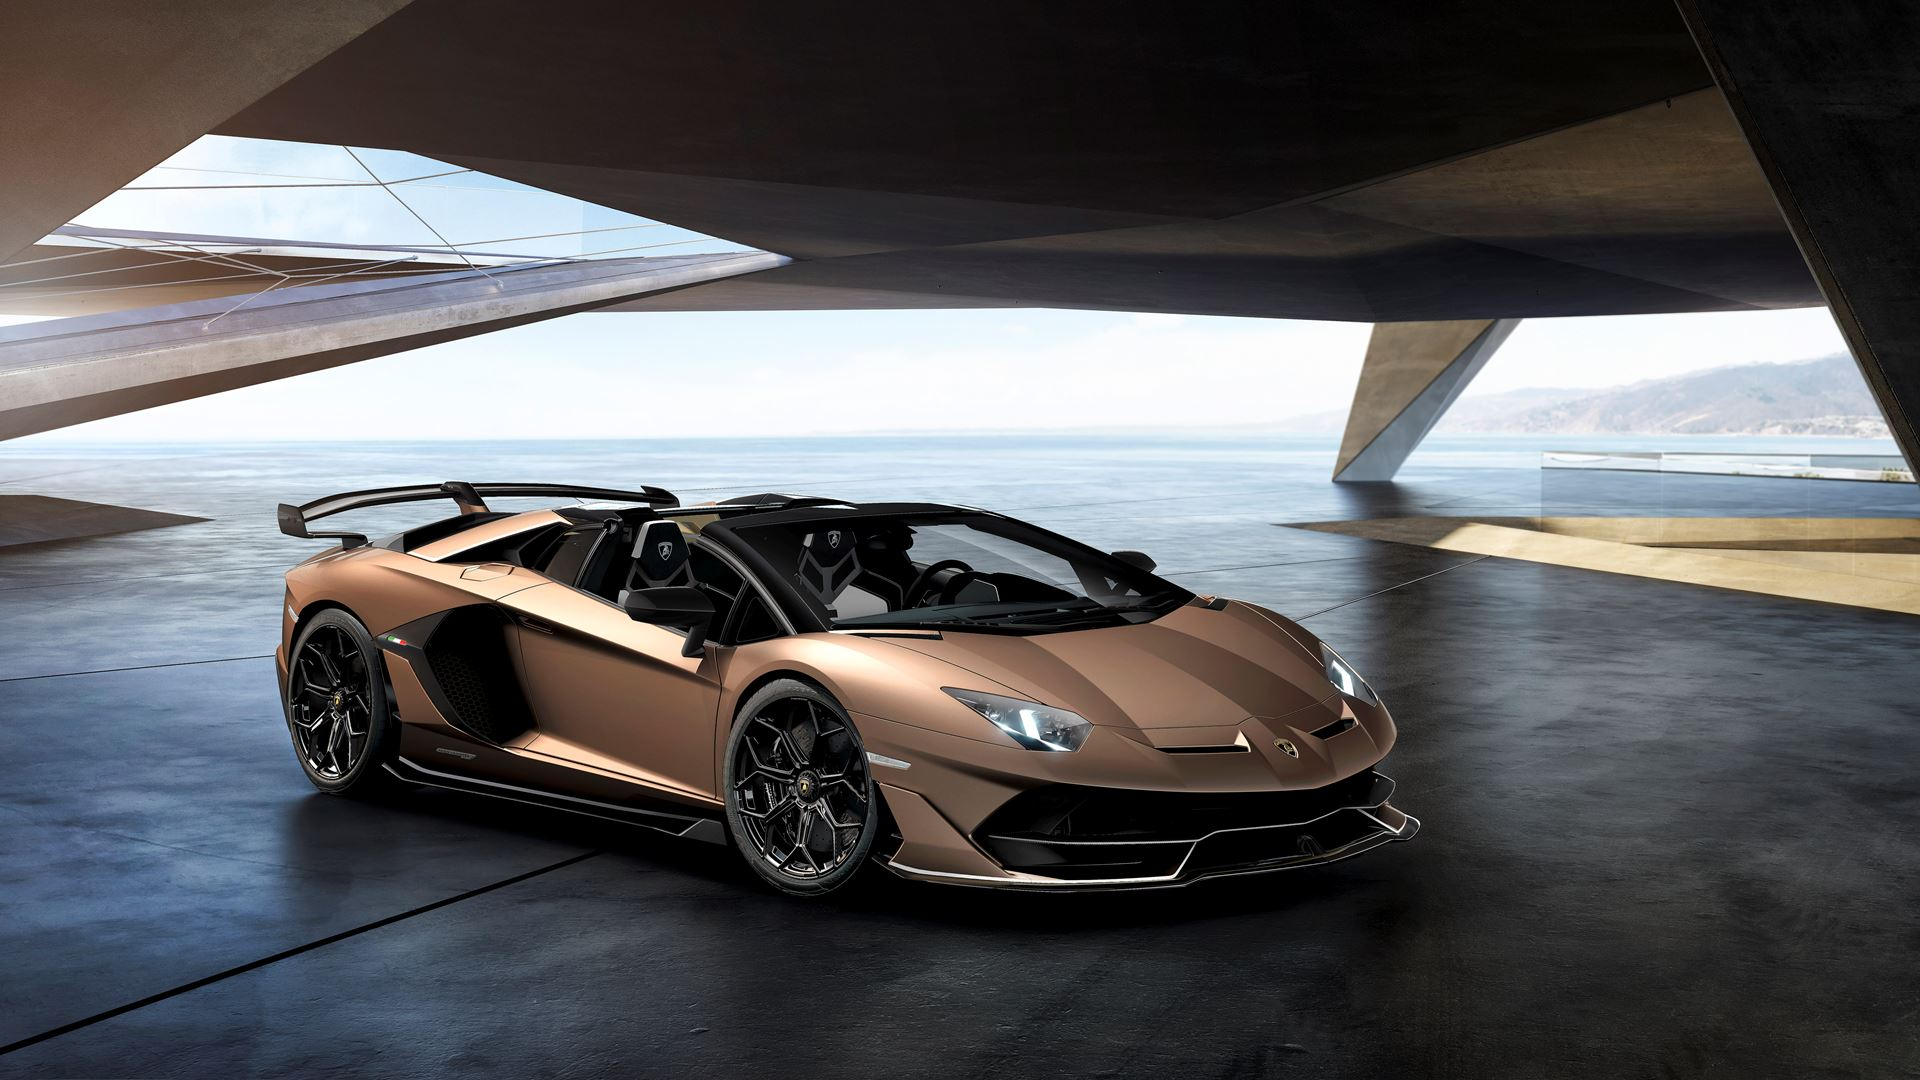 The first olfactory Automobili Lamborghini branding project signed by Culti Milano - Image 7